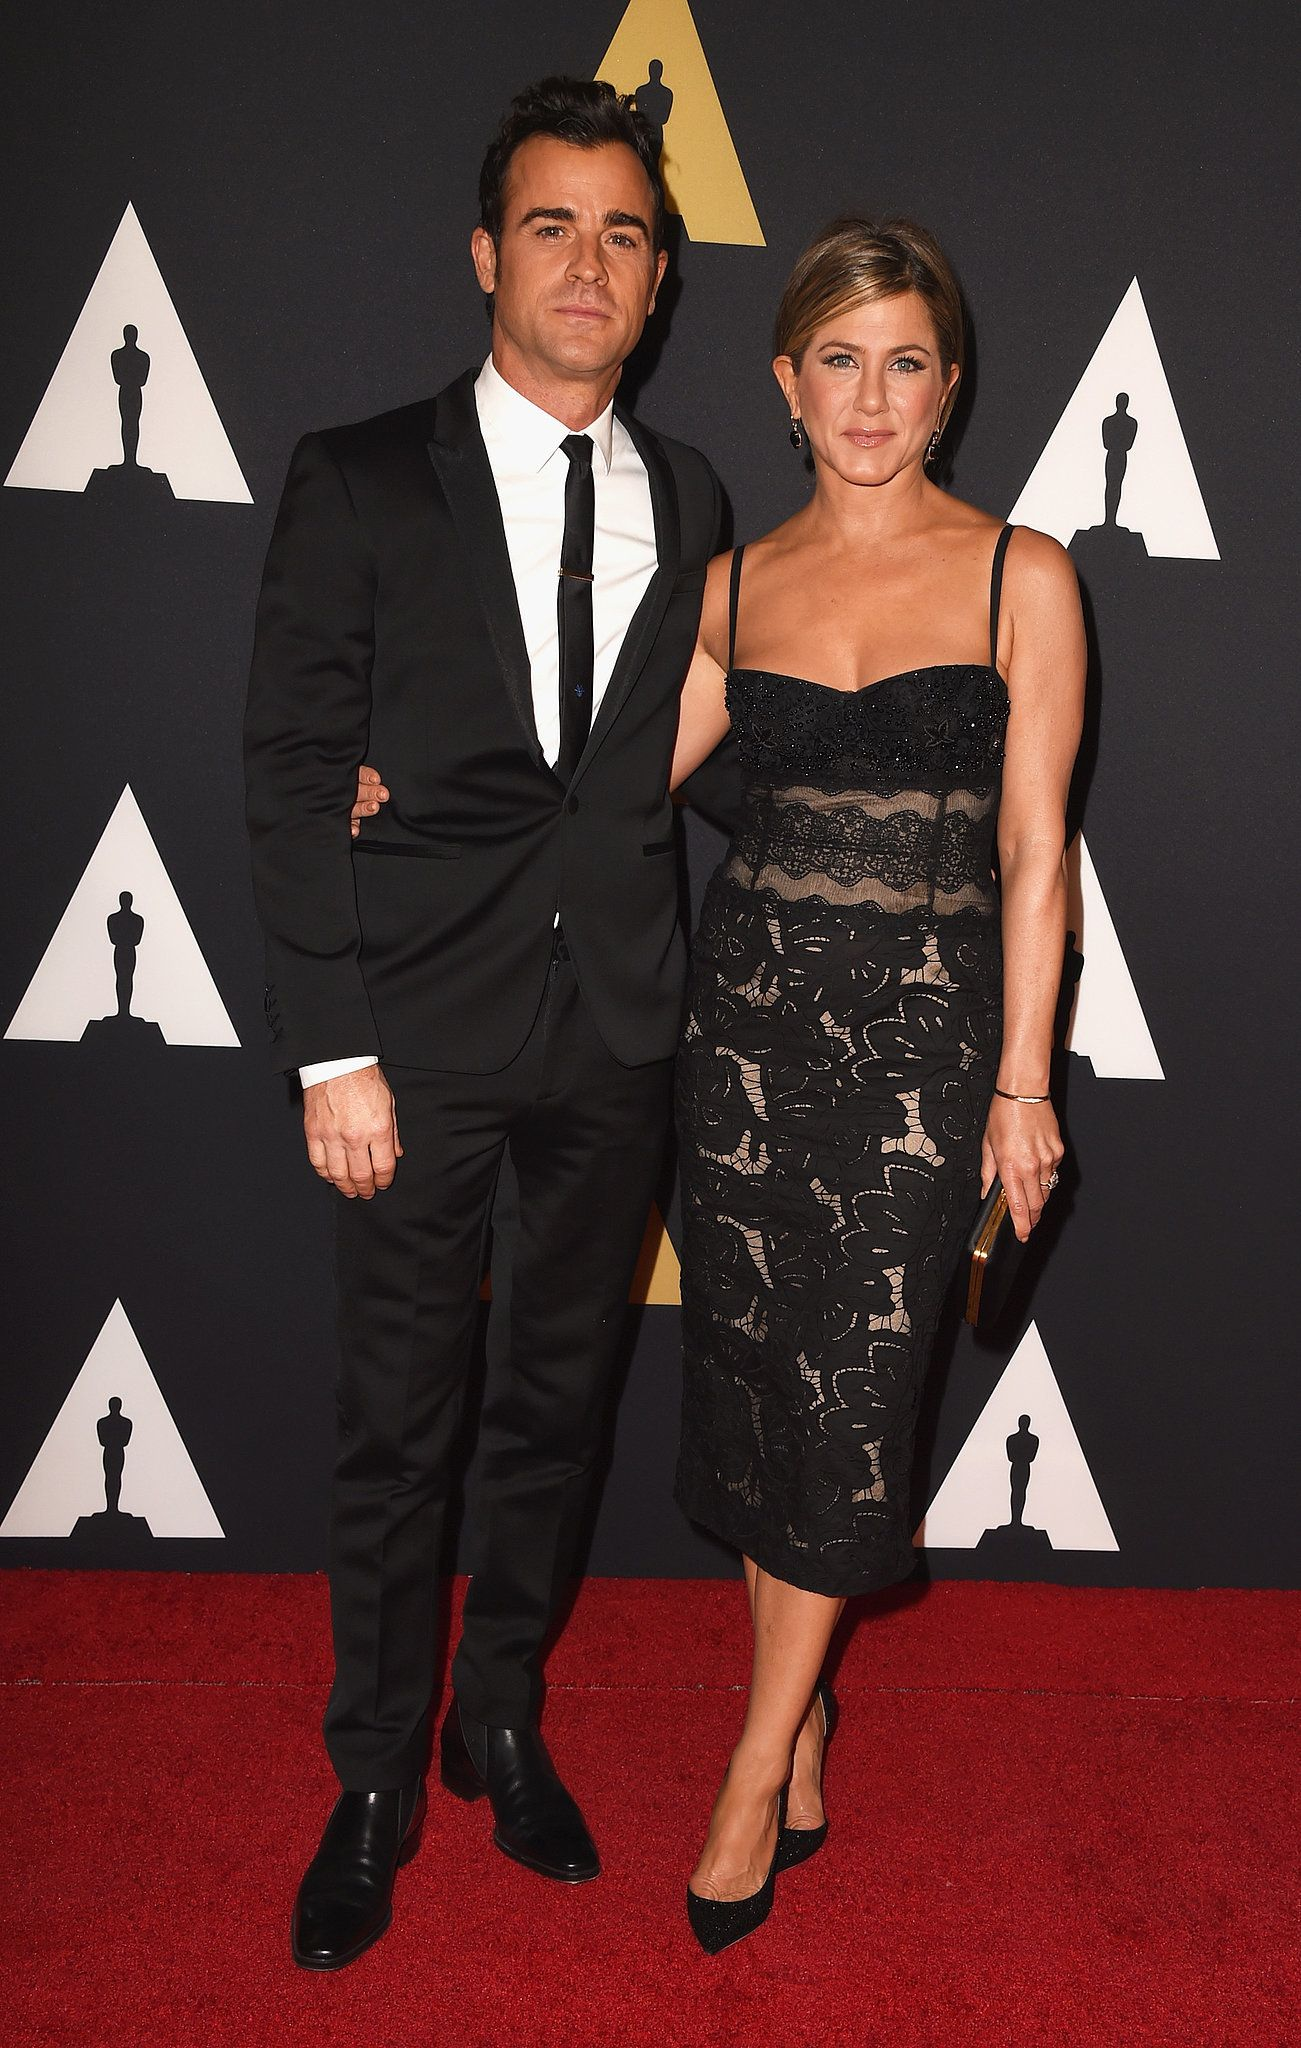 Jennifer Aniston and Justin Theroux at the 2014 Governors Awards at the Ray Dolby theater in Hollywood on Nov 8, 2014